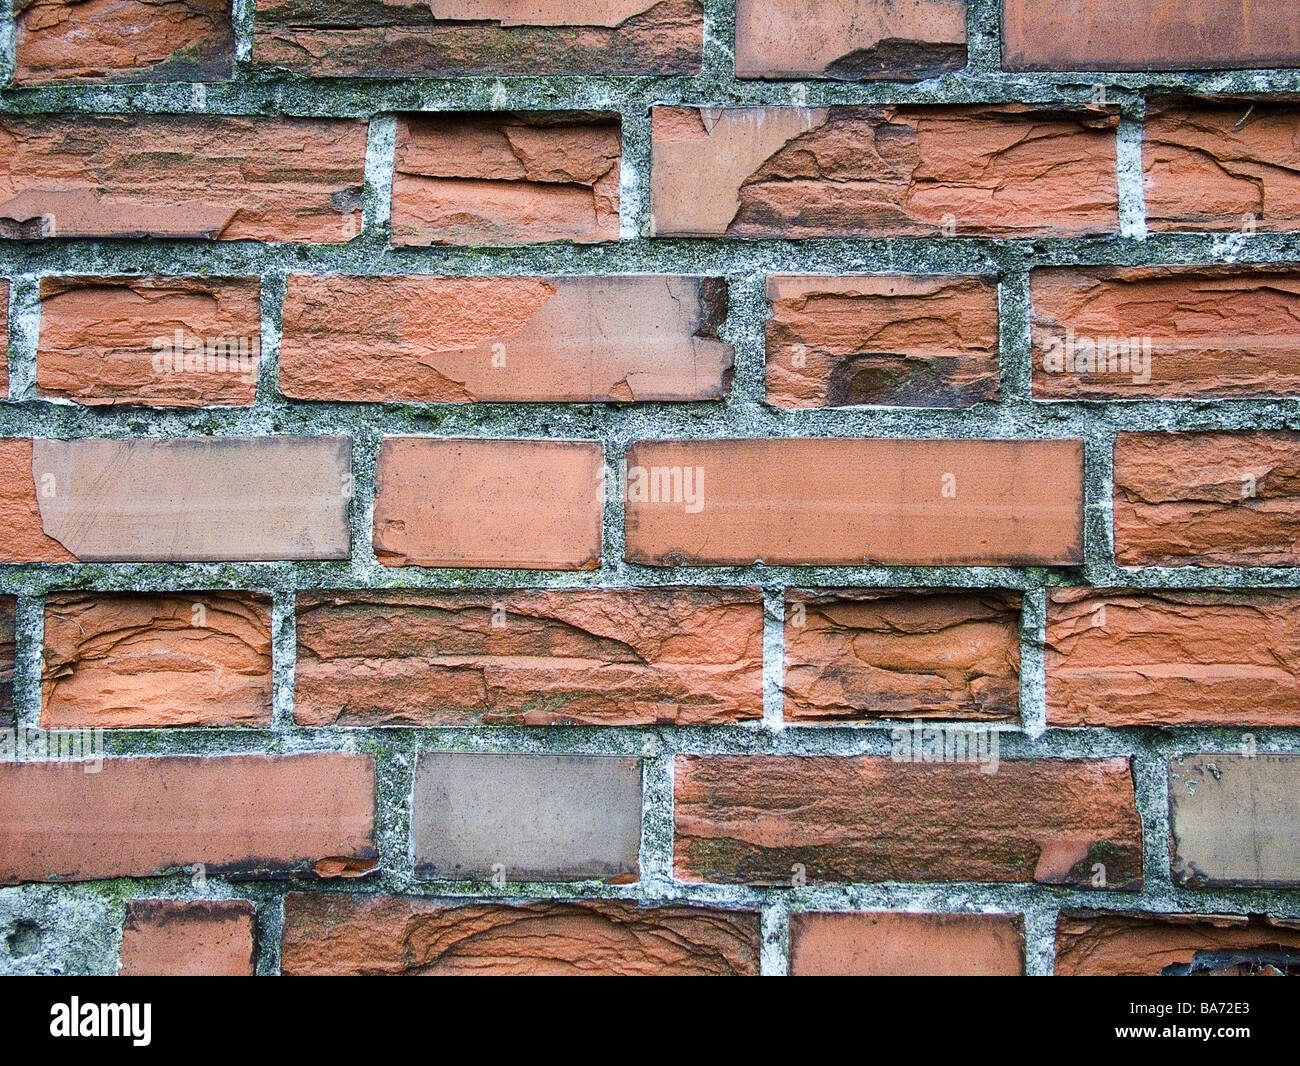 Brick Wall Detail Close Up Buildings House Bricks Red Masoned Clinker Damaged Old Flaked